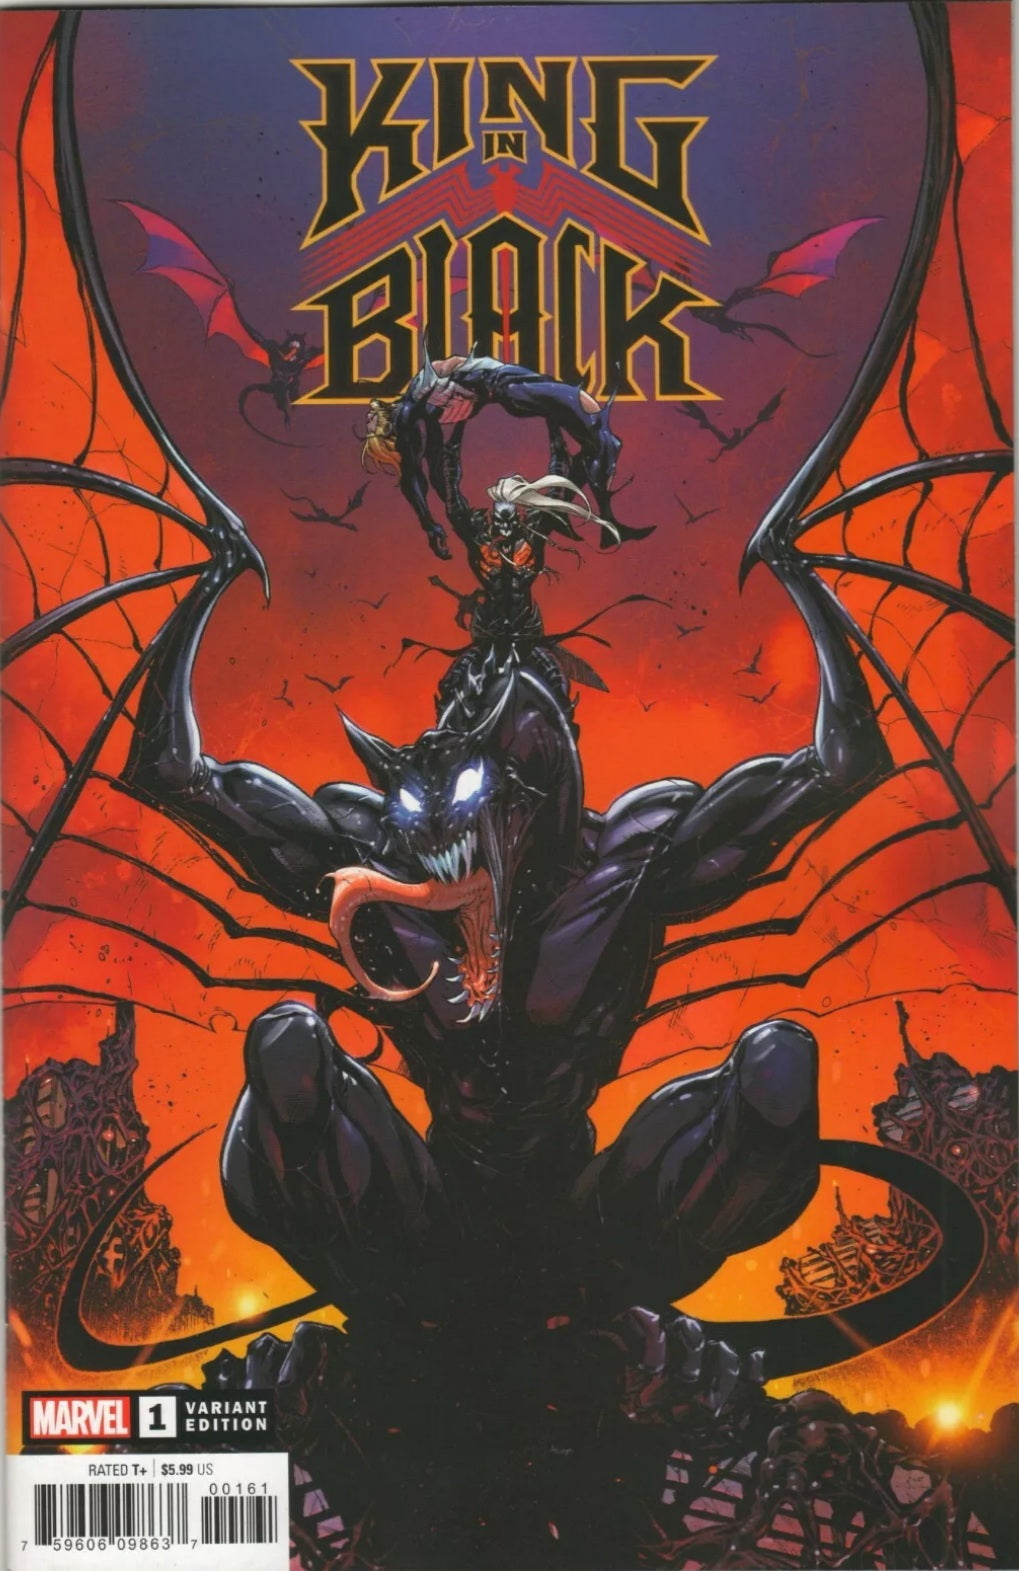 KING IN BLACK #1 1:50 Iban Coello DRAGON VARIANT VENOM DONNY CATES MARVEL KNUL